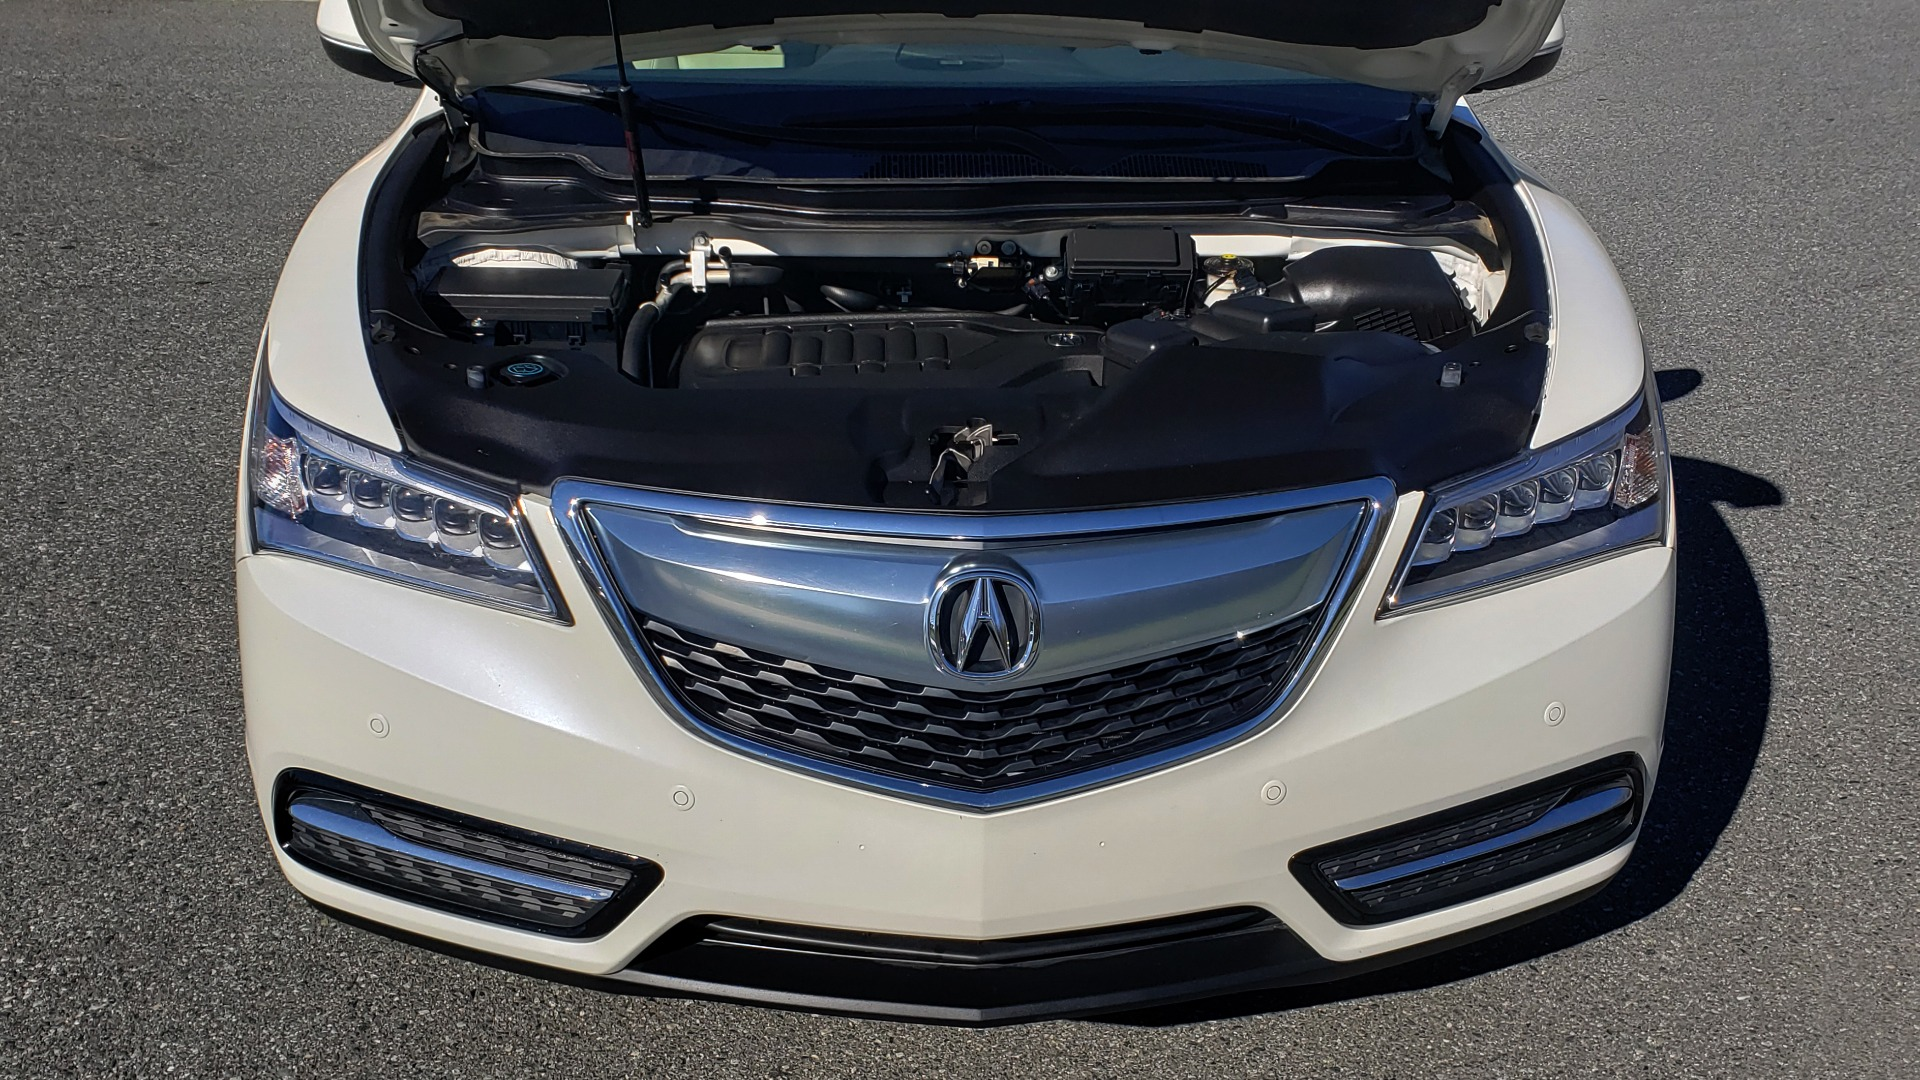 Used 2016 Acura MDX AWD W/ADVANCED PKG / NAV / SUNROOF / REARVIEW / 3-ROW for sale Sold at Formula Imports in Charlotte NC 28227 11